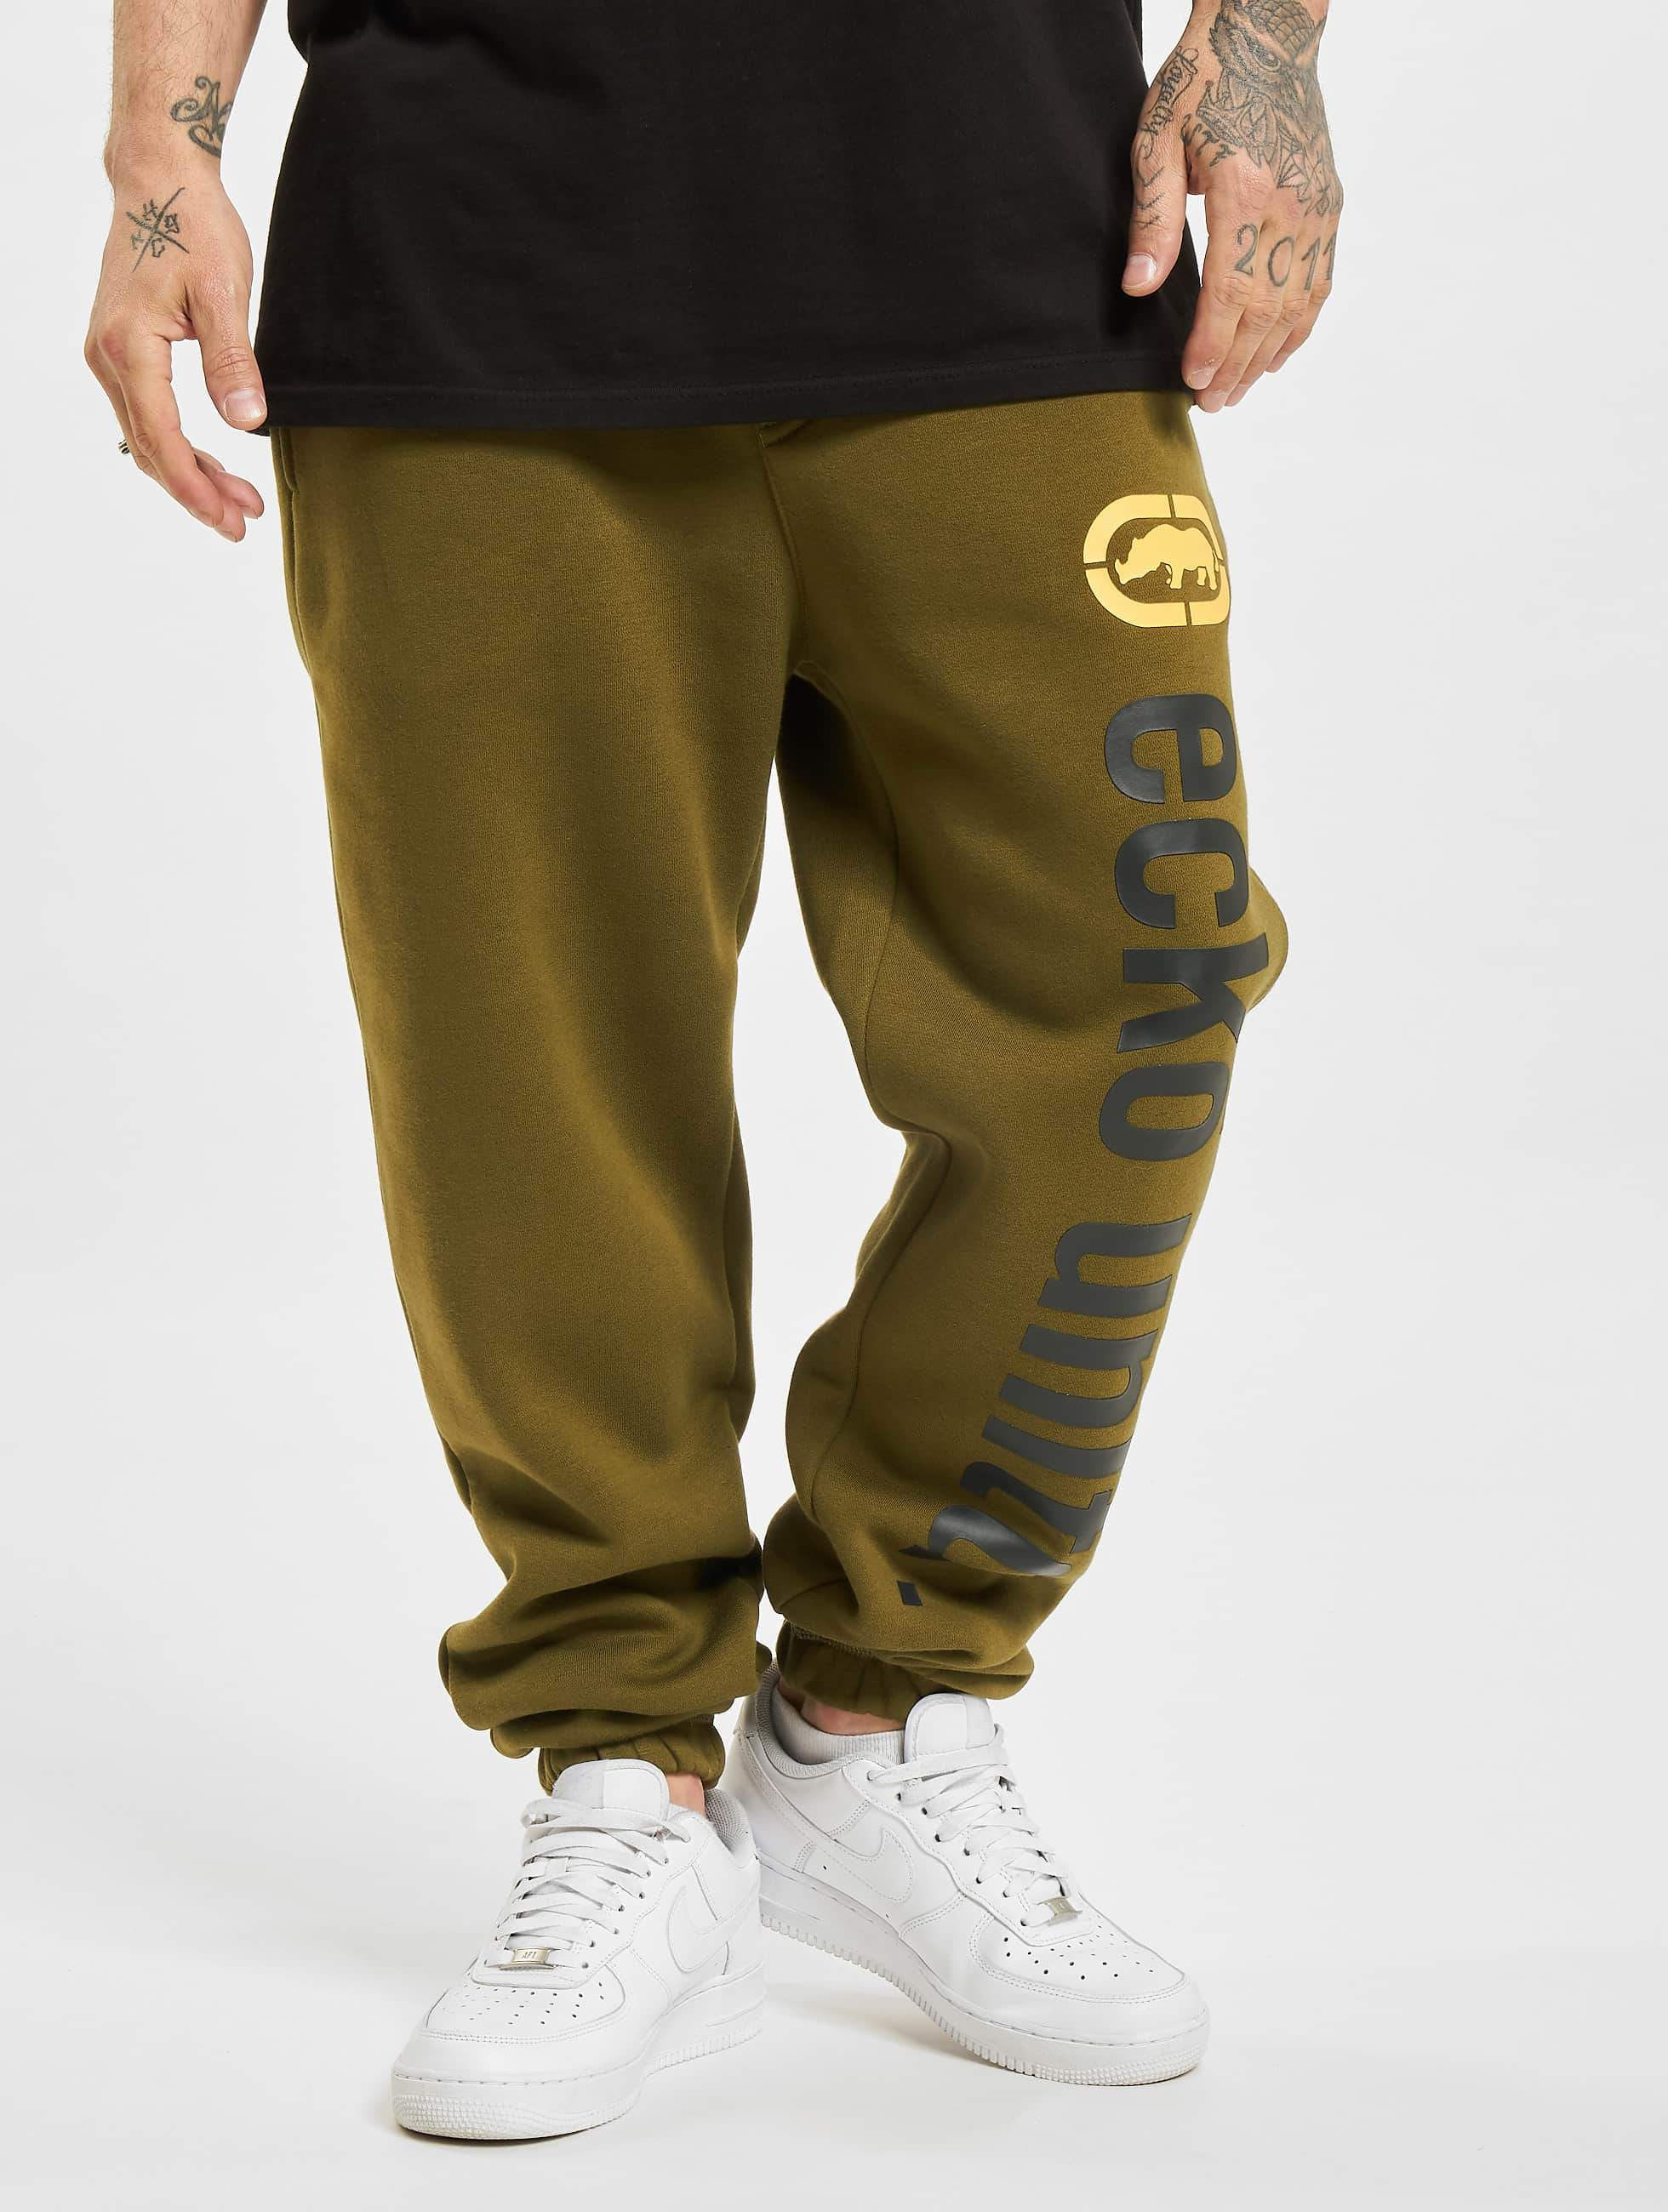 Ecko Unltd. / Sweat Pant 2Face in olive 3XL